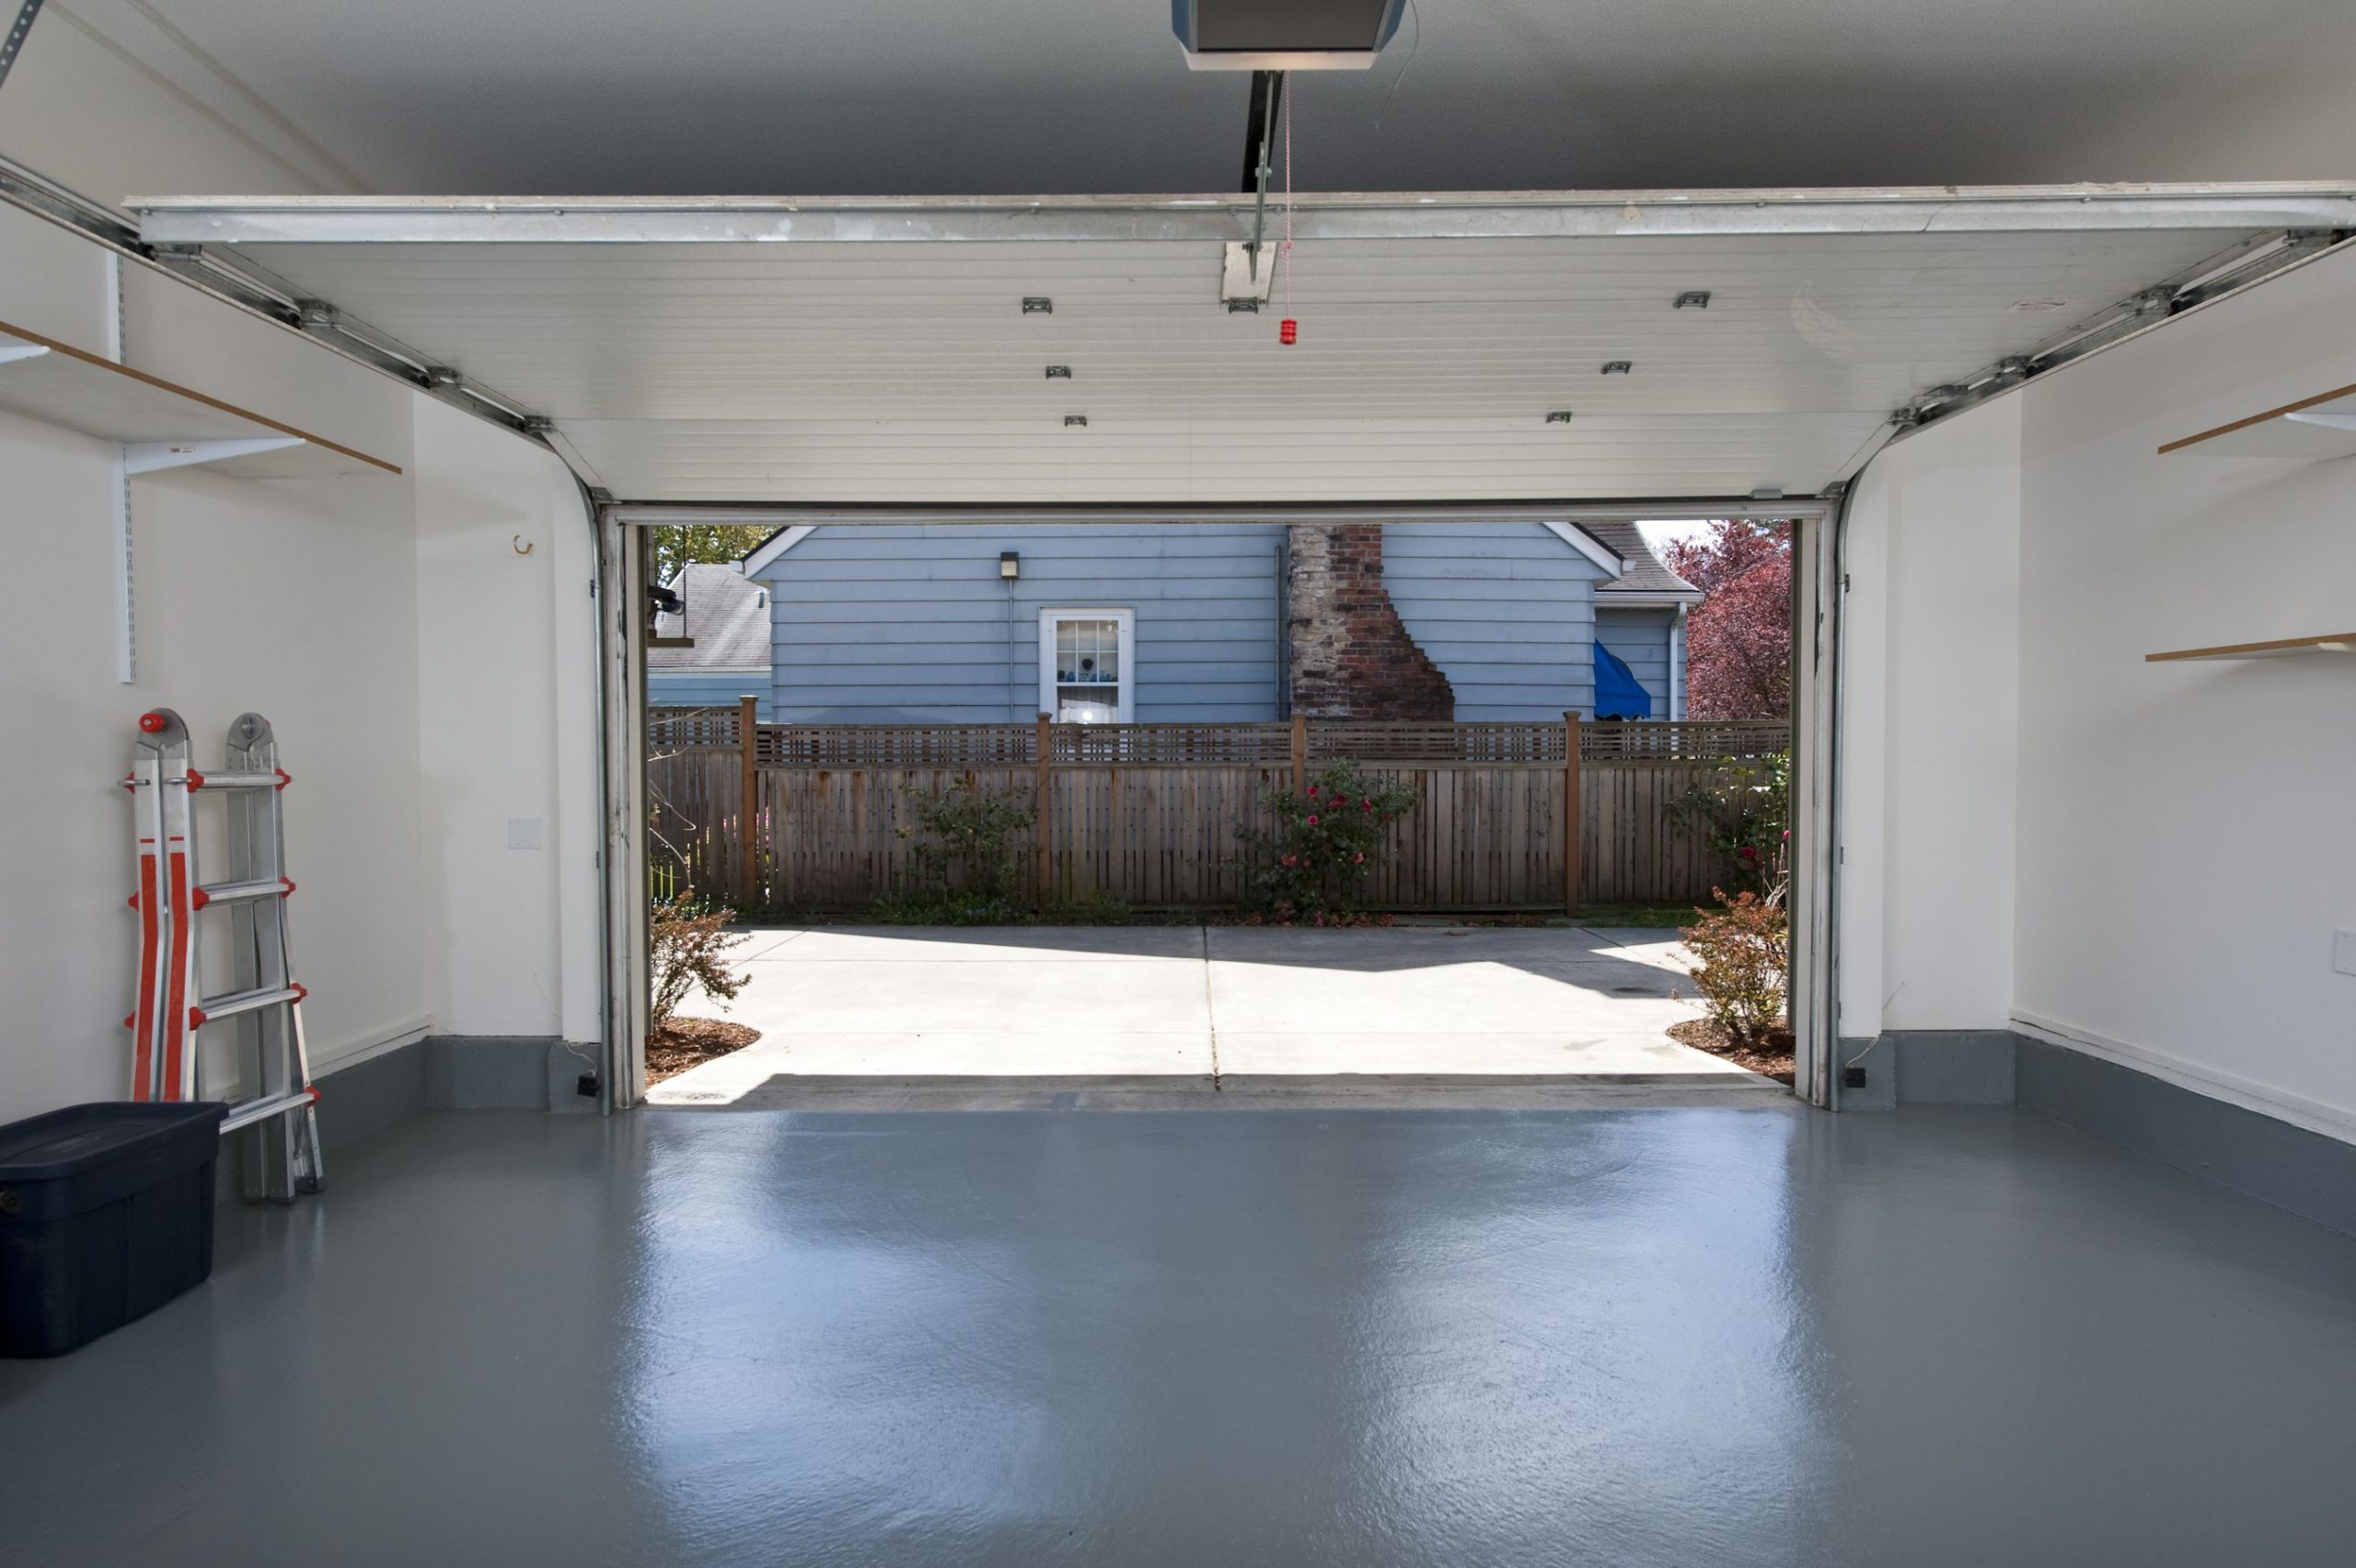 Why people want to have epoxy garage flooring?